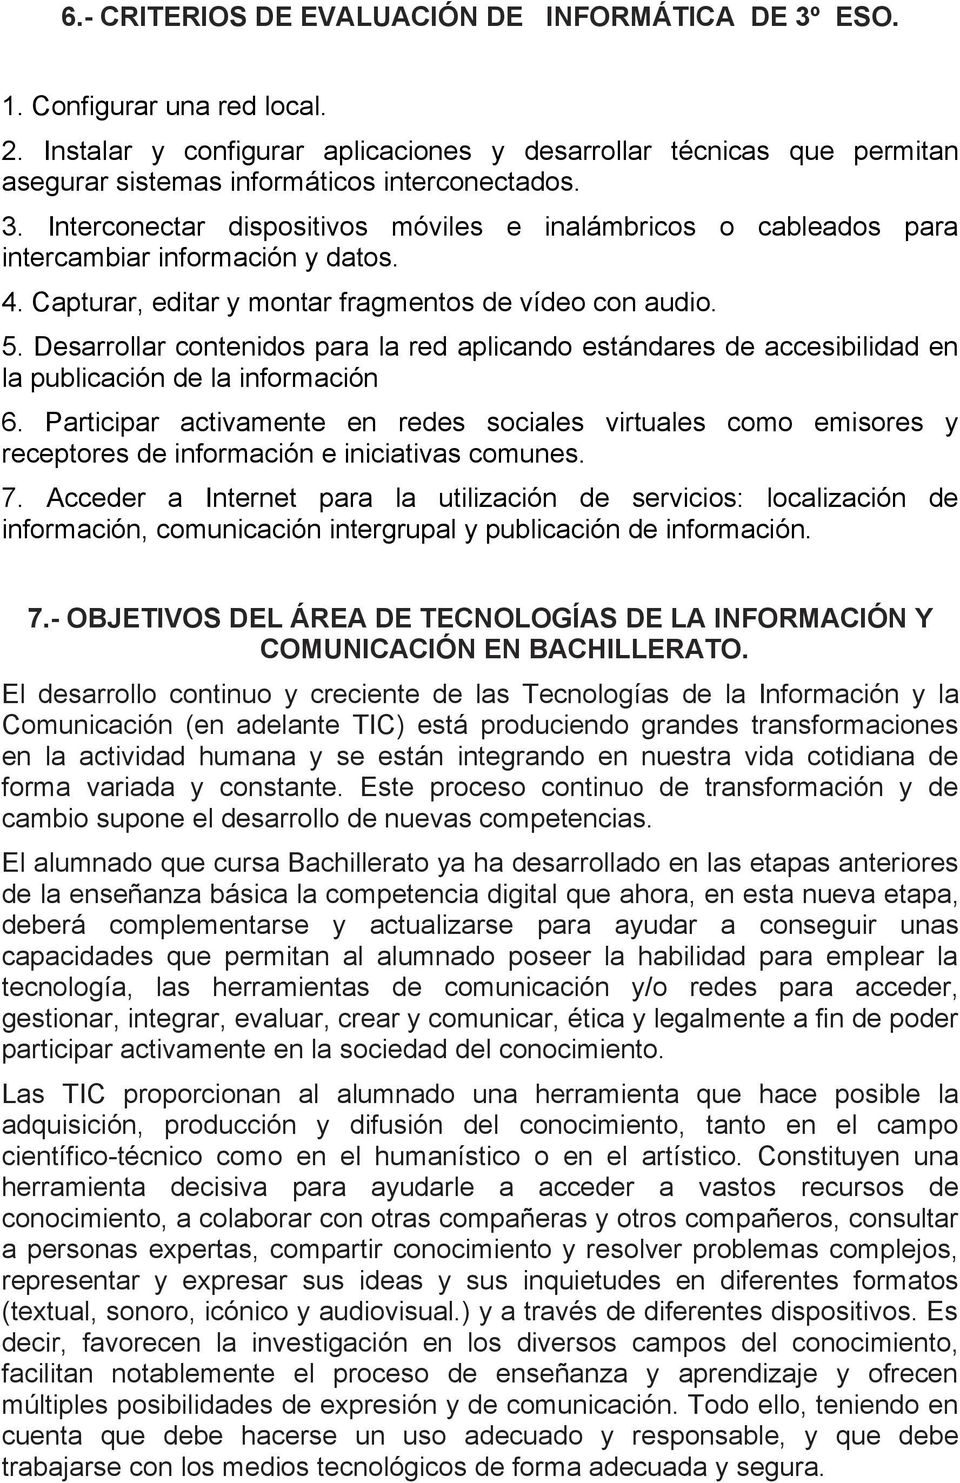 Interconectar dispositivos móviles e inalámbricos o cableados para intercambiar información y datos. 4. Capturar, editar y montar fragmentos de vídeo con audio. 5.